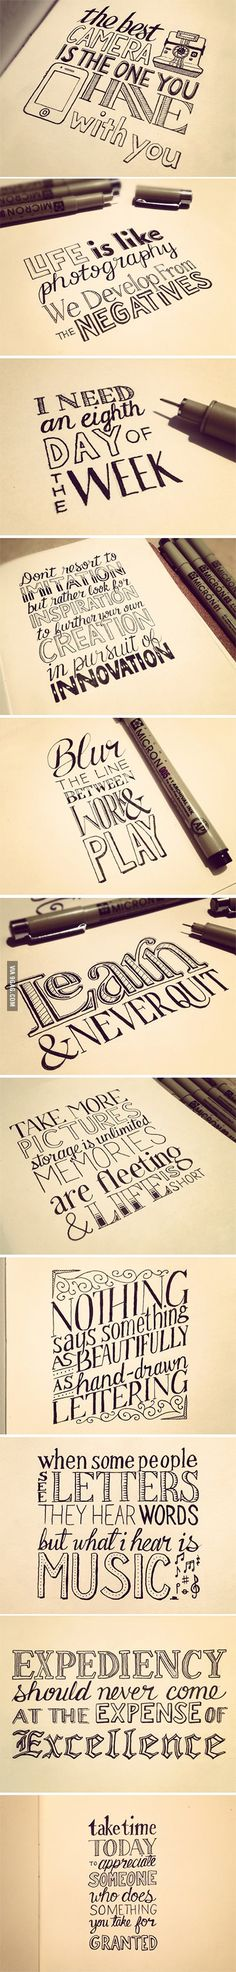 Cool Typography Quotes, type, photography, lettering, letters, hand drawn, pen